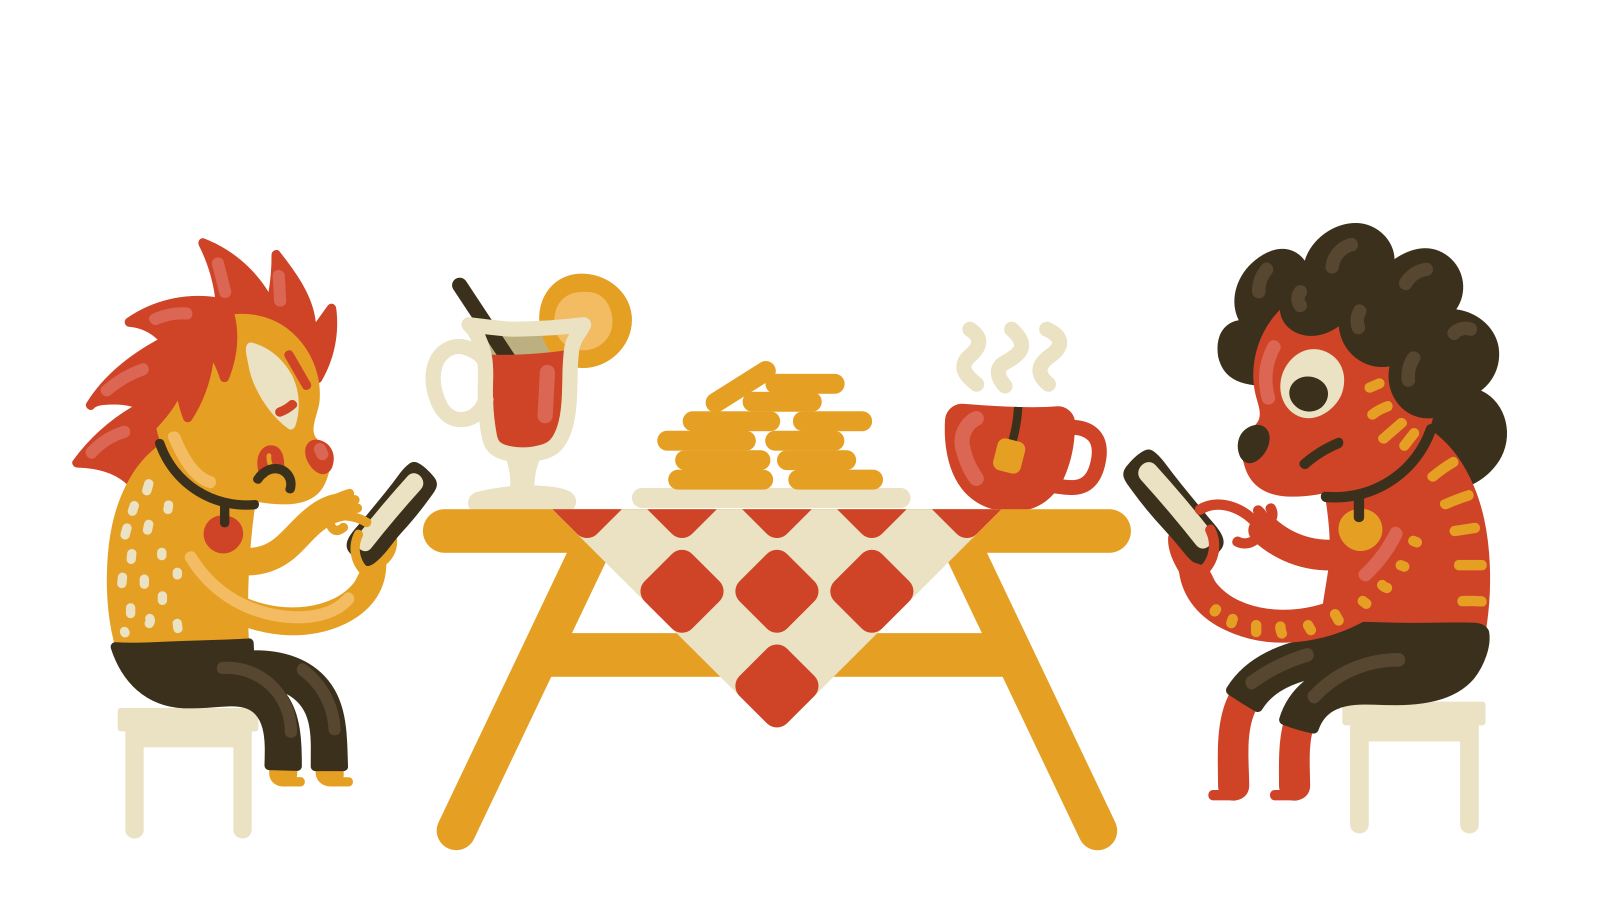 Luck of real communication behind the table Clipart illustration in PNG, SVG